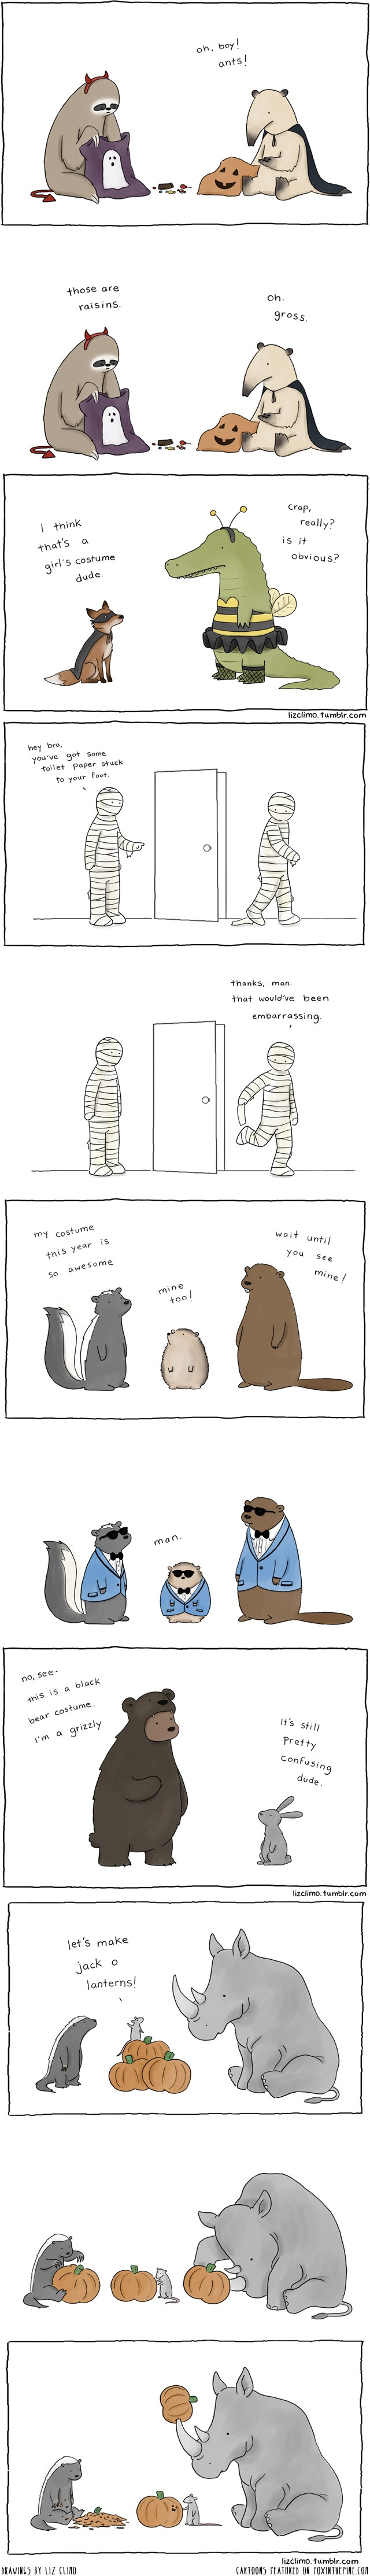 Halloween cartoons by Liz Climo featured on FOXINTHEPINE.COM